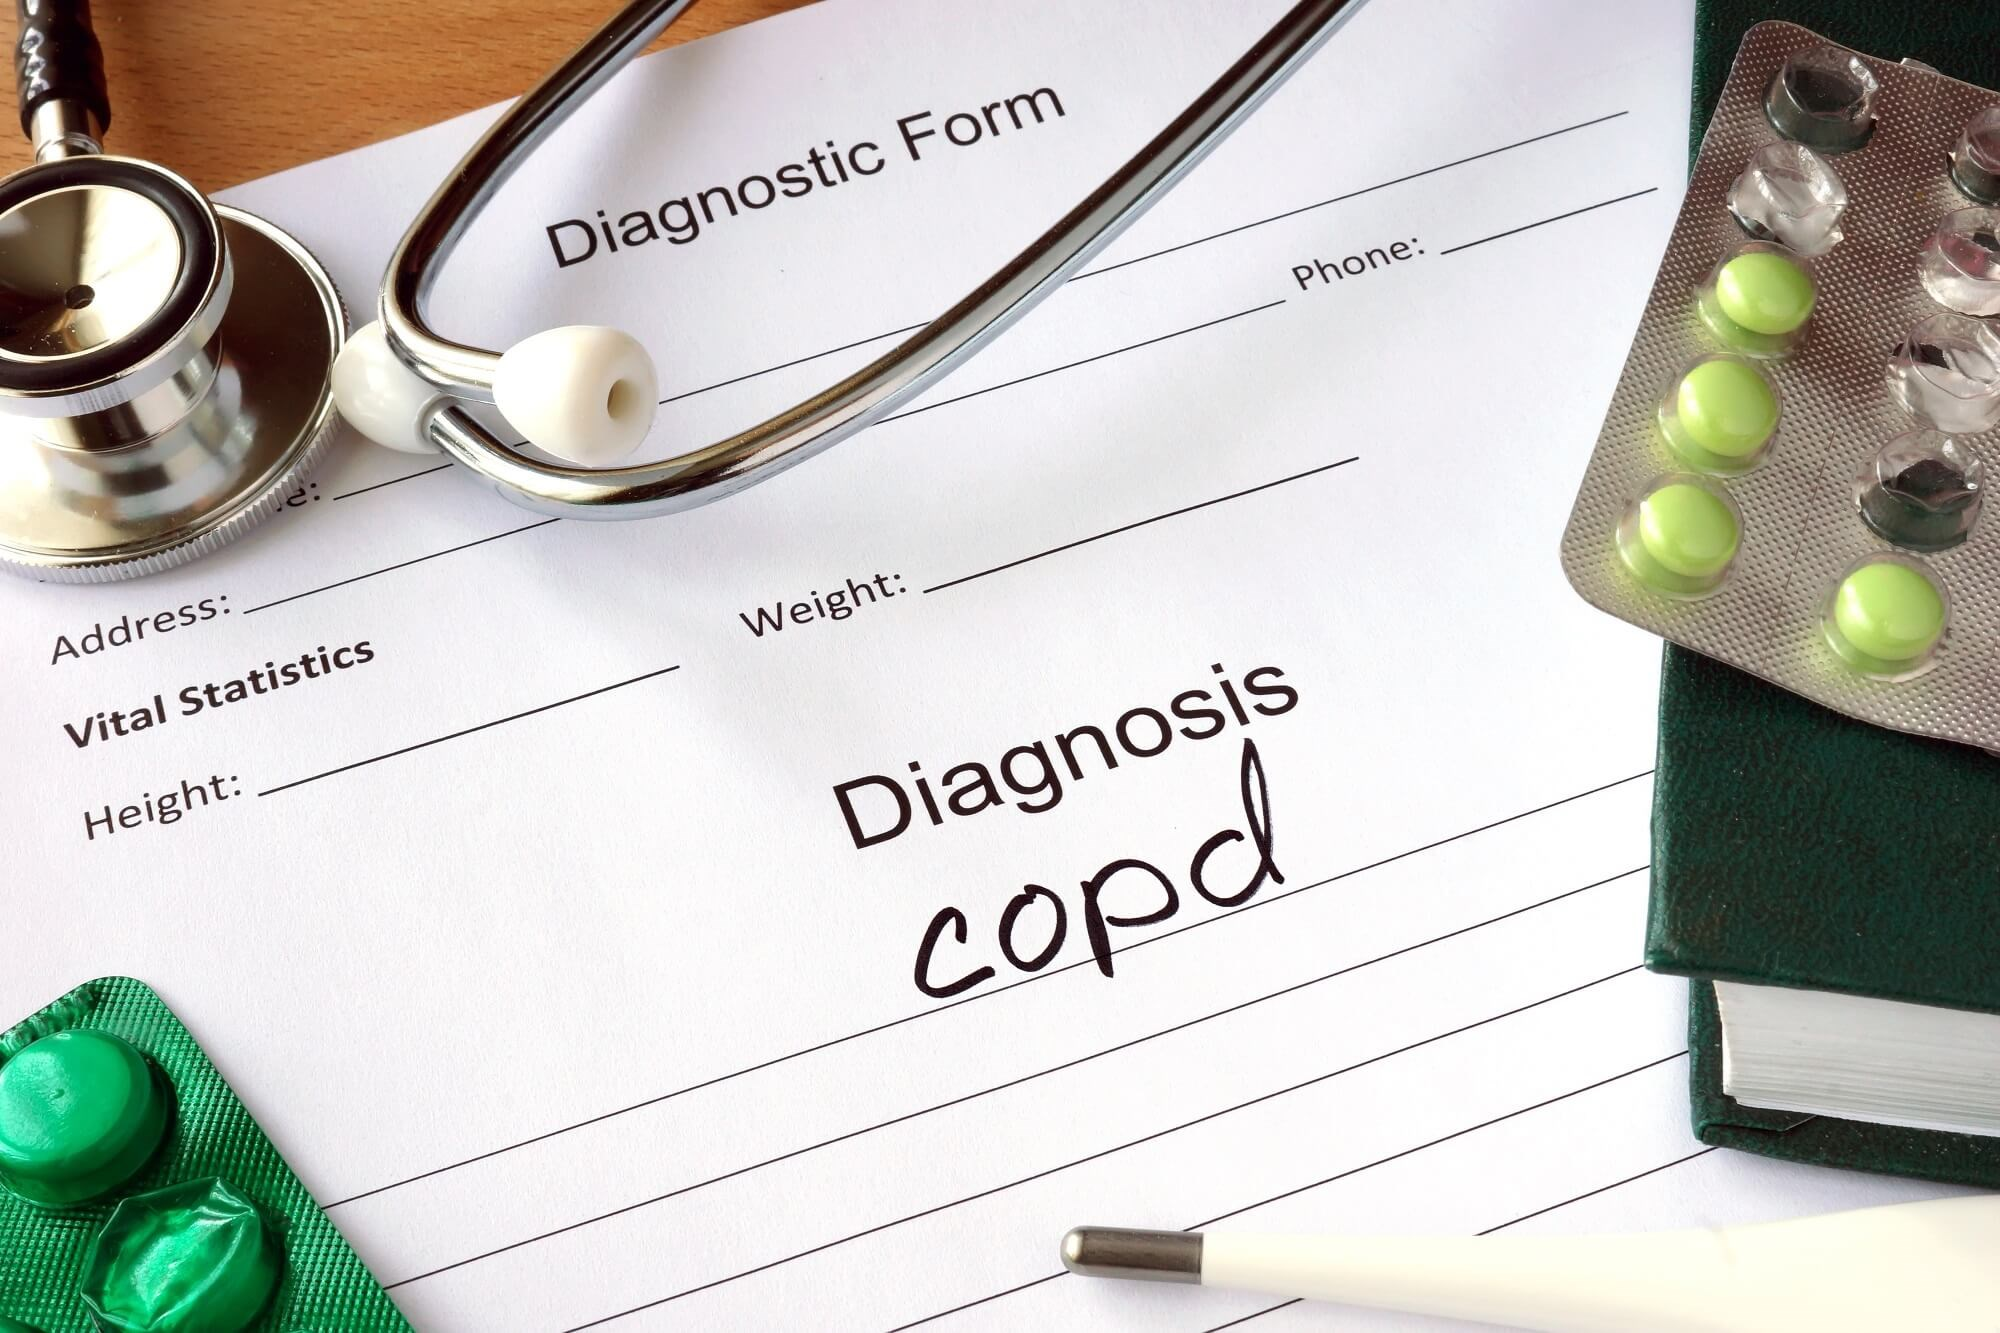 COPD False Positive Diagnosis Found in the Majority of Study Cases